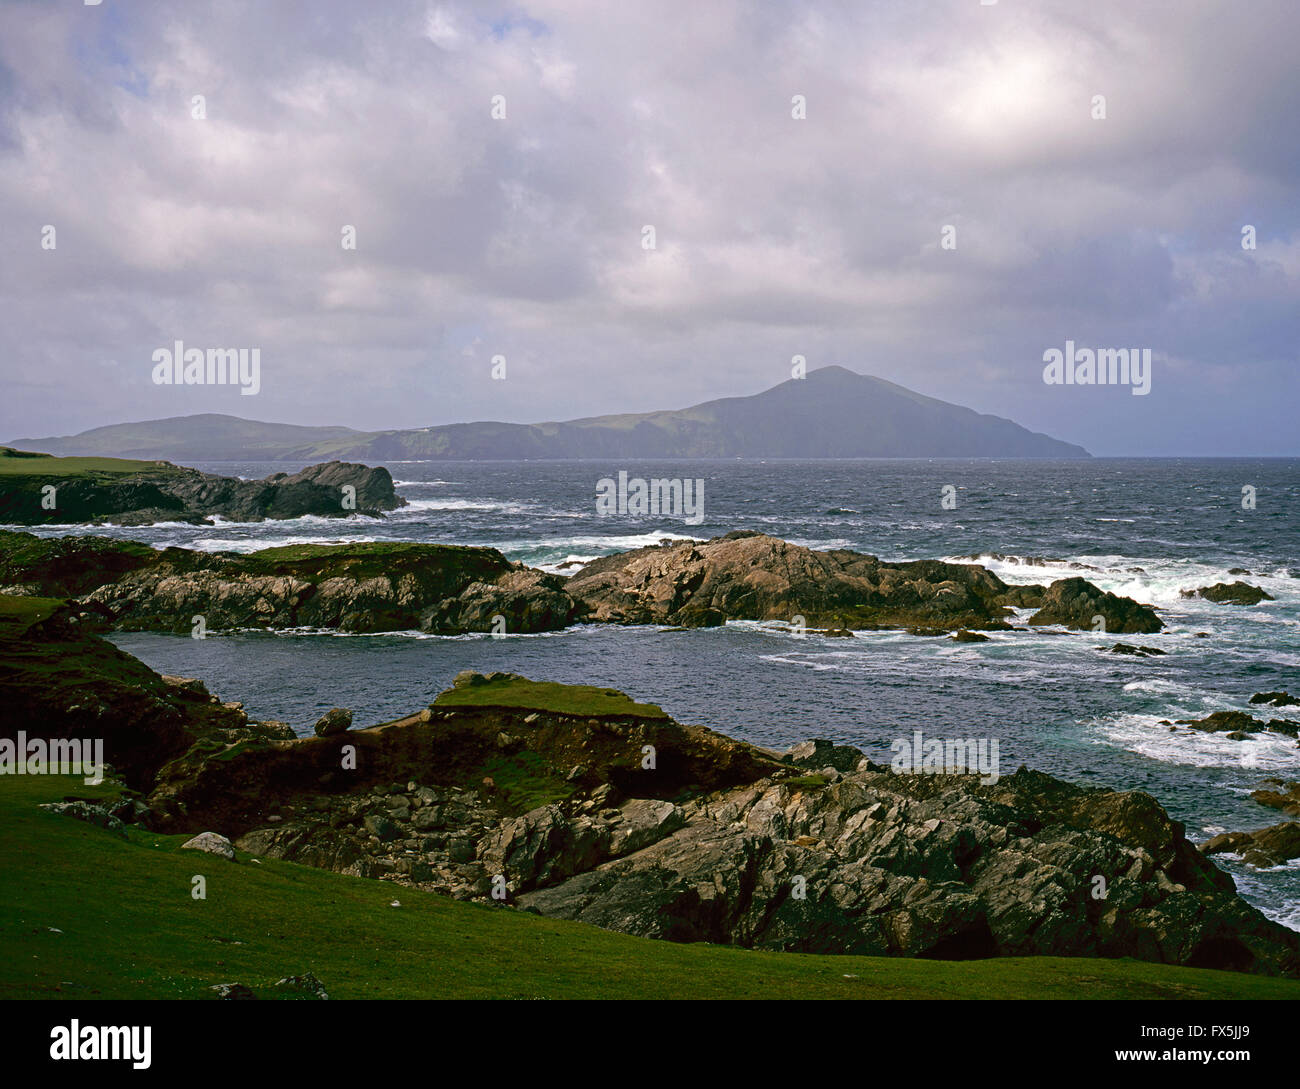 Clare Island from Achill Island , County Mayo, West Coast of Ireland - Stock Image